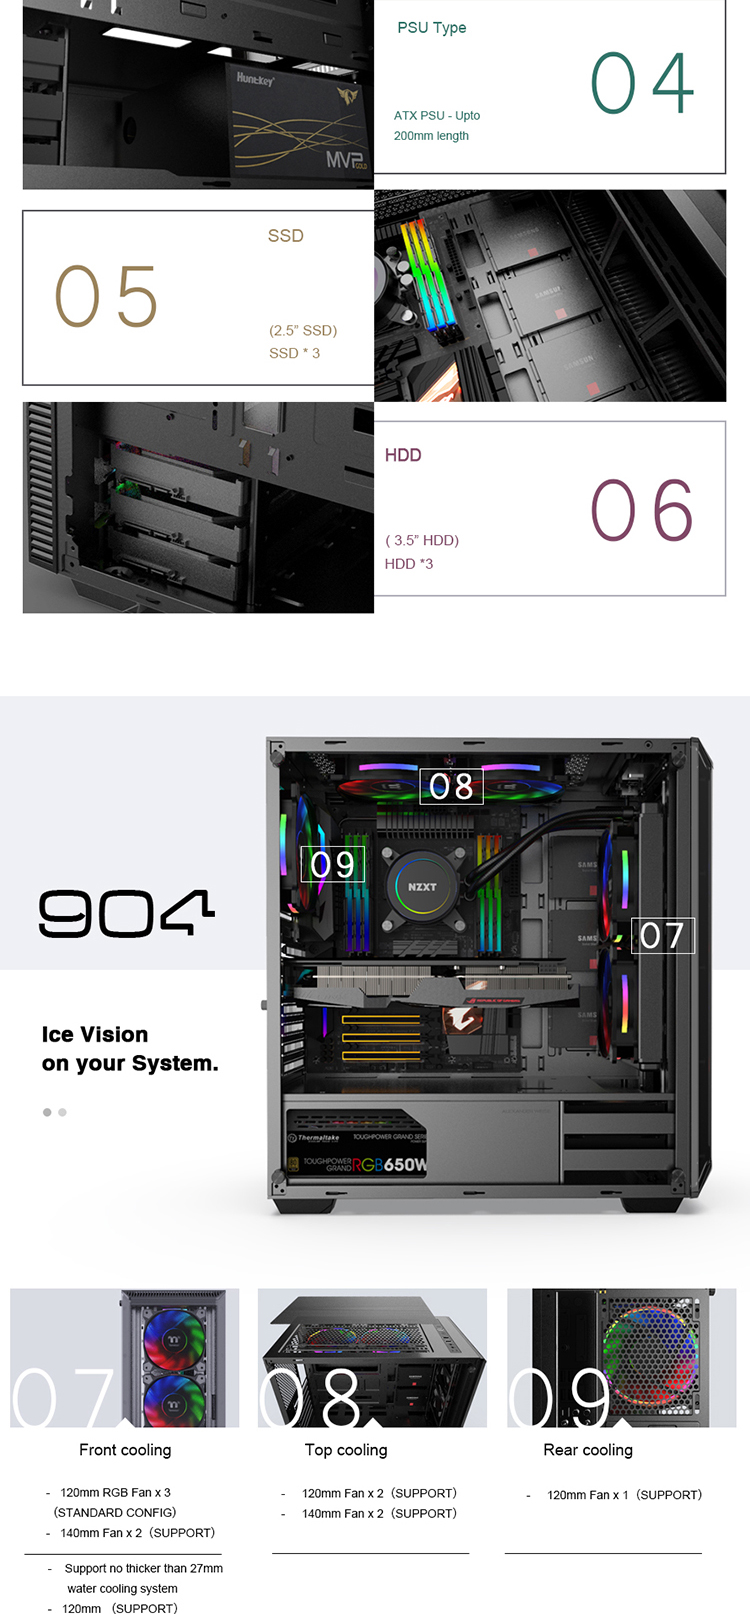 JNP-C904 Attractive 4.0MM Tempered Glass Sideboard ABS Plastic 2.50mm Tea Acrylics EATX RGB fan gaming case for Gamer